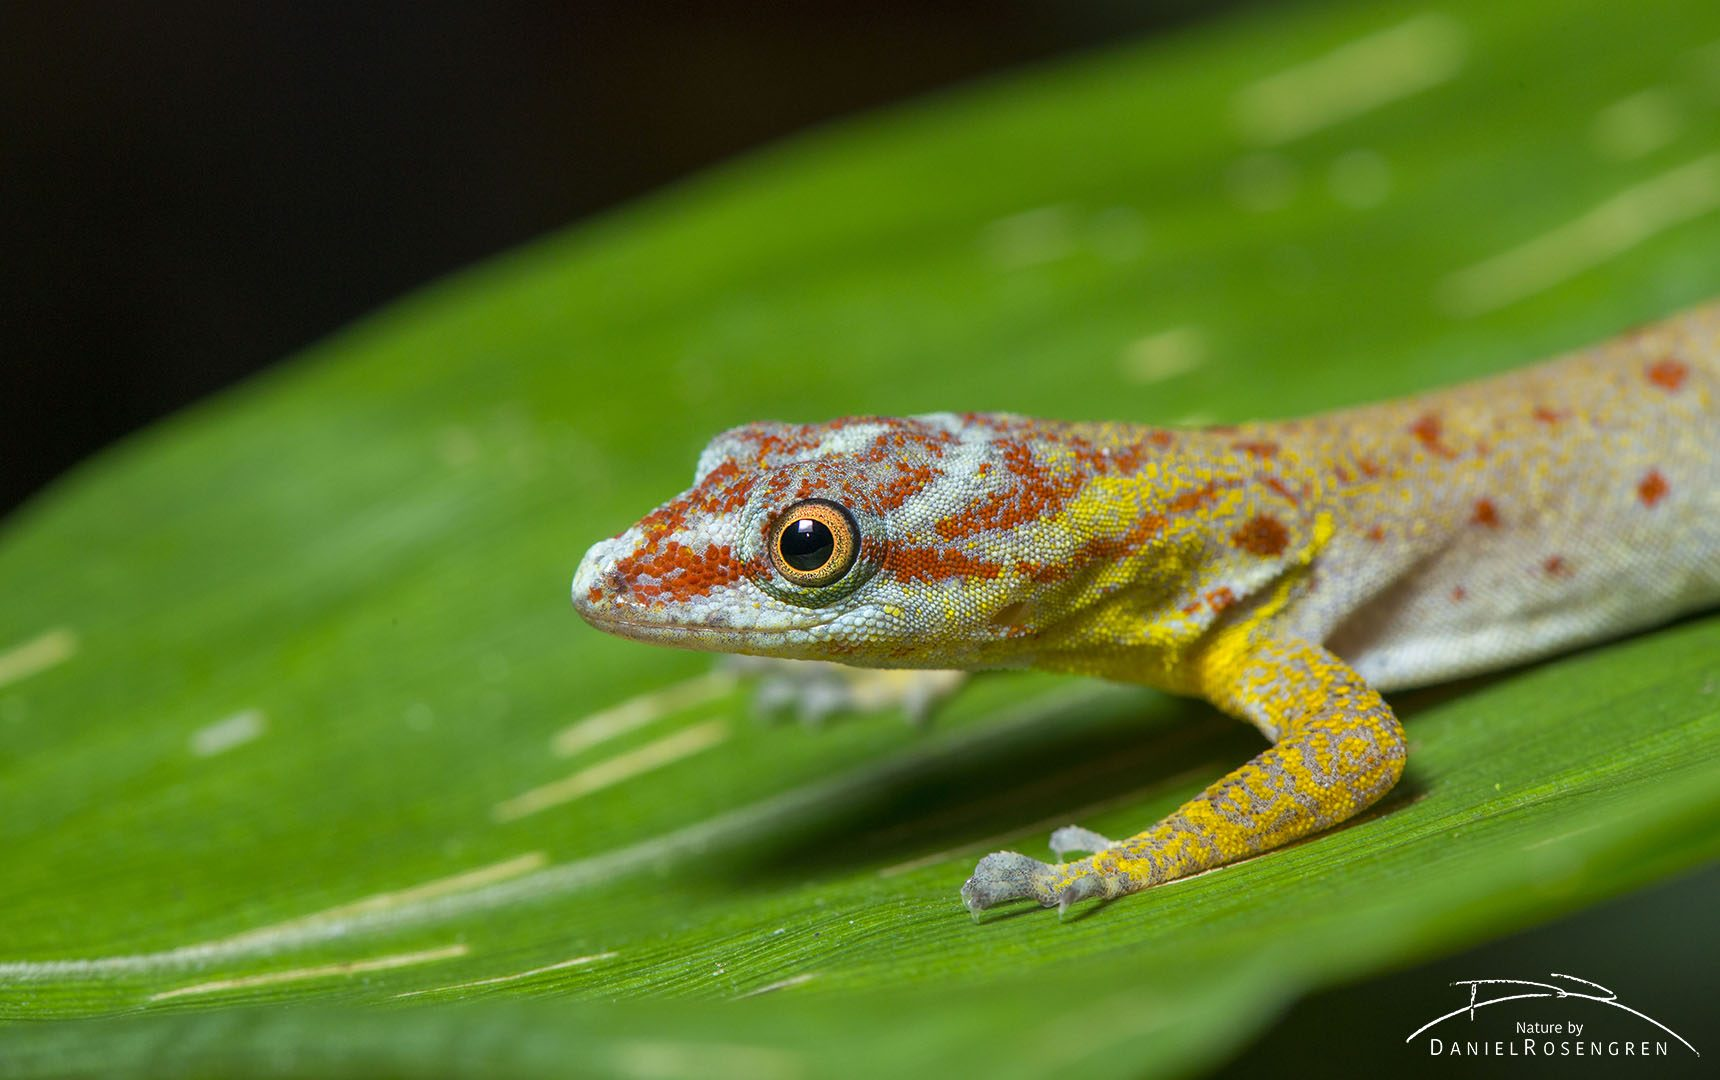 A Dwarf Gecko in Yaguas, famous for its ability to walk on the water tension. © Daniel Rosengren